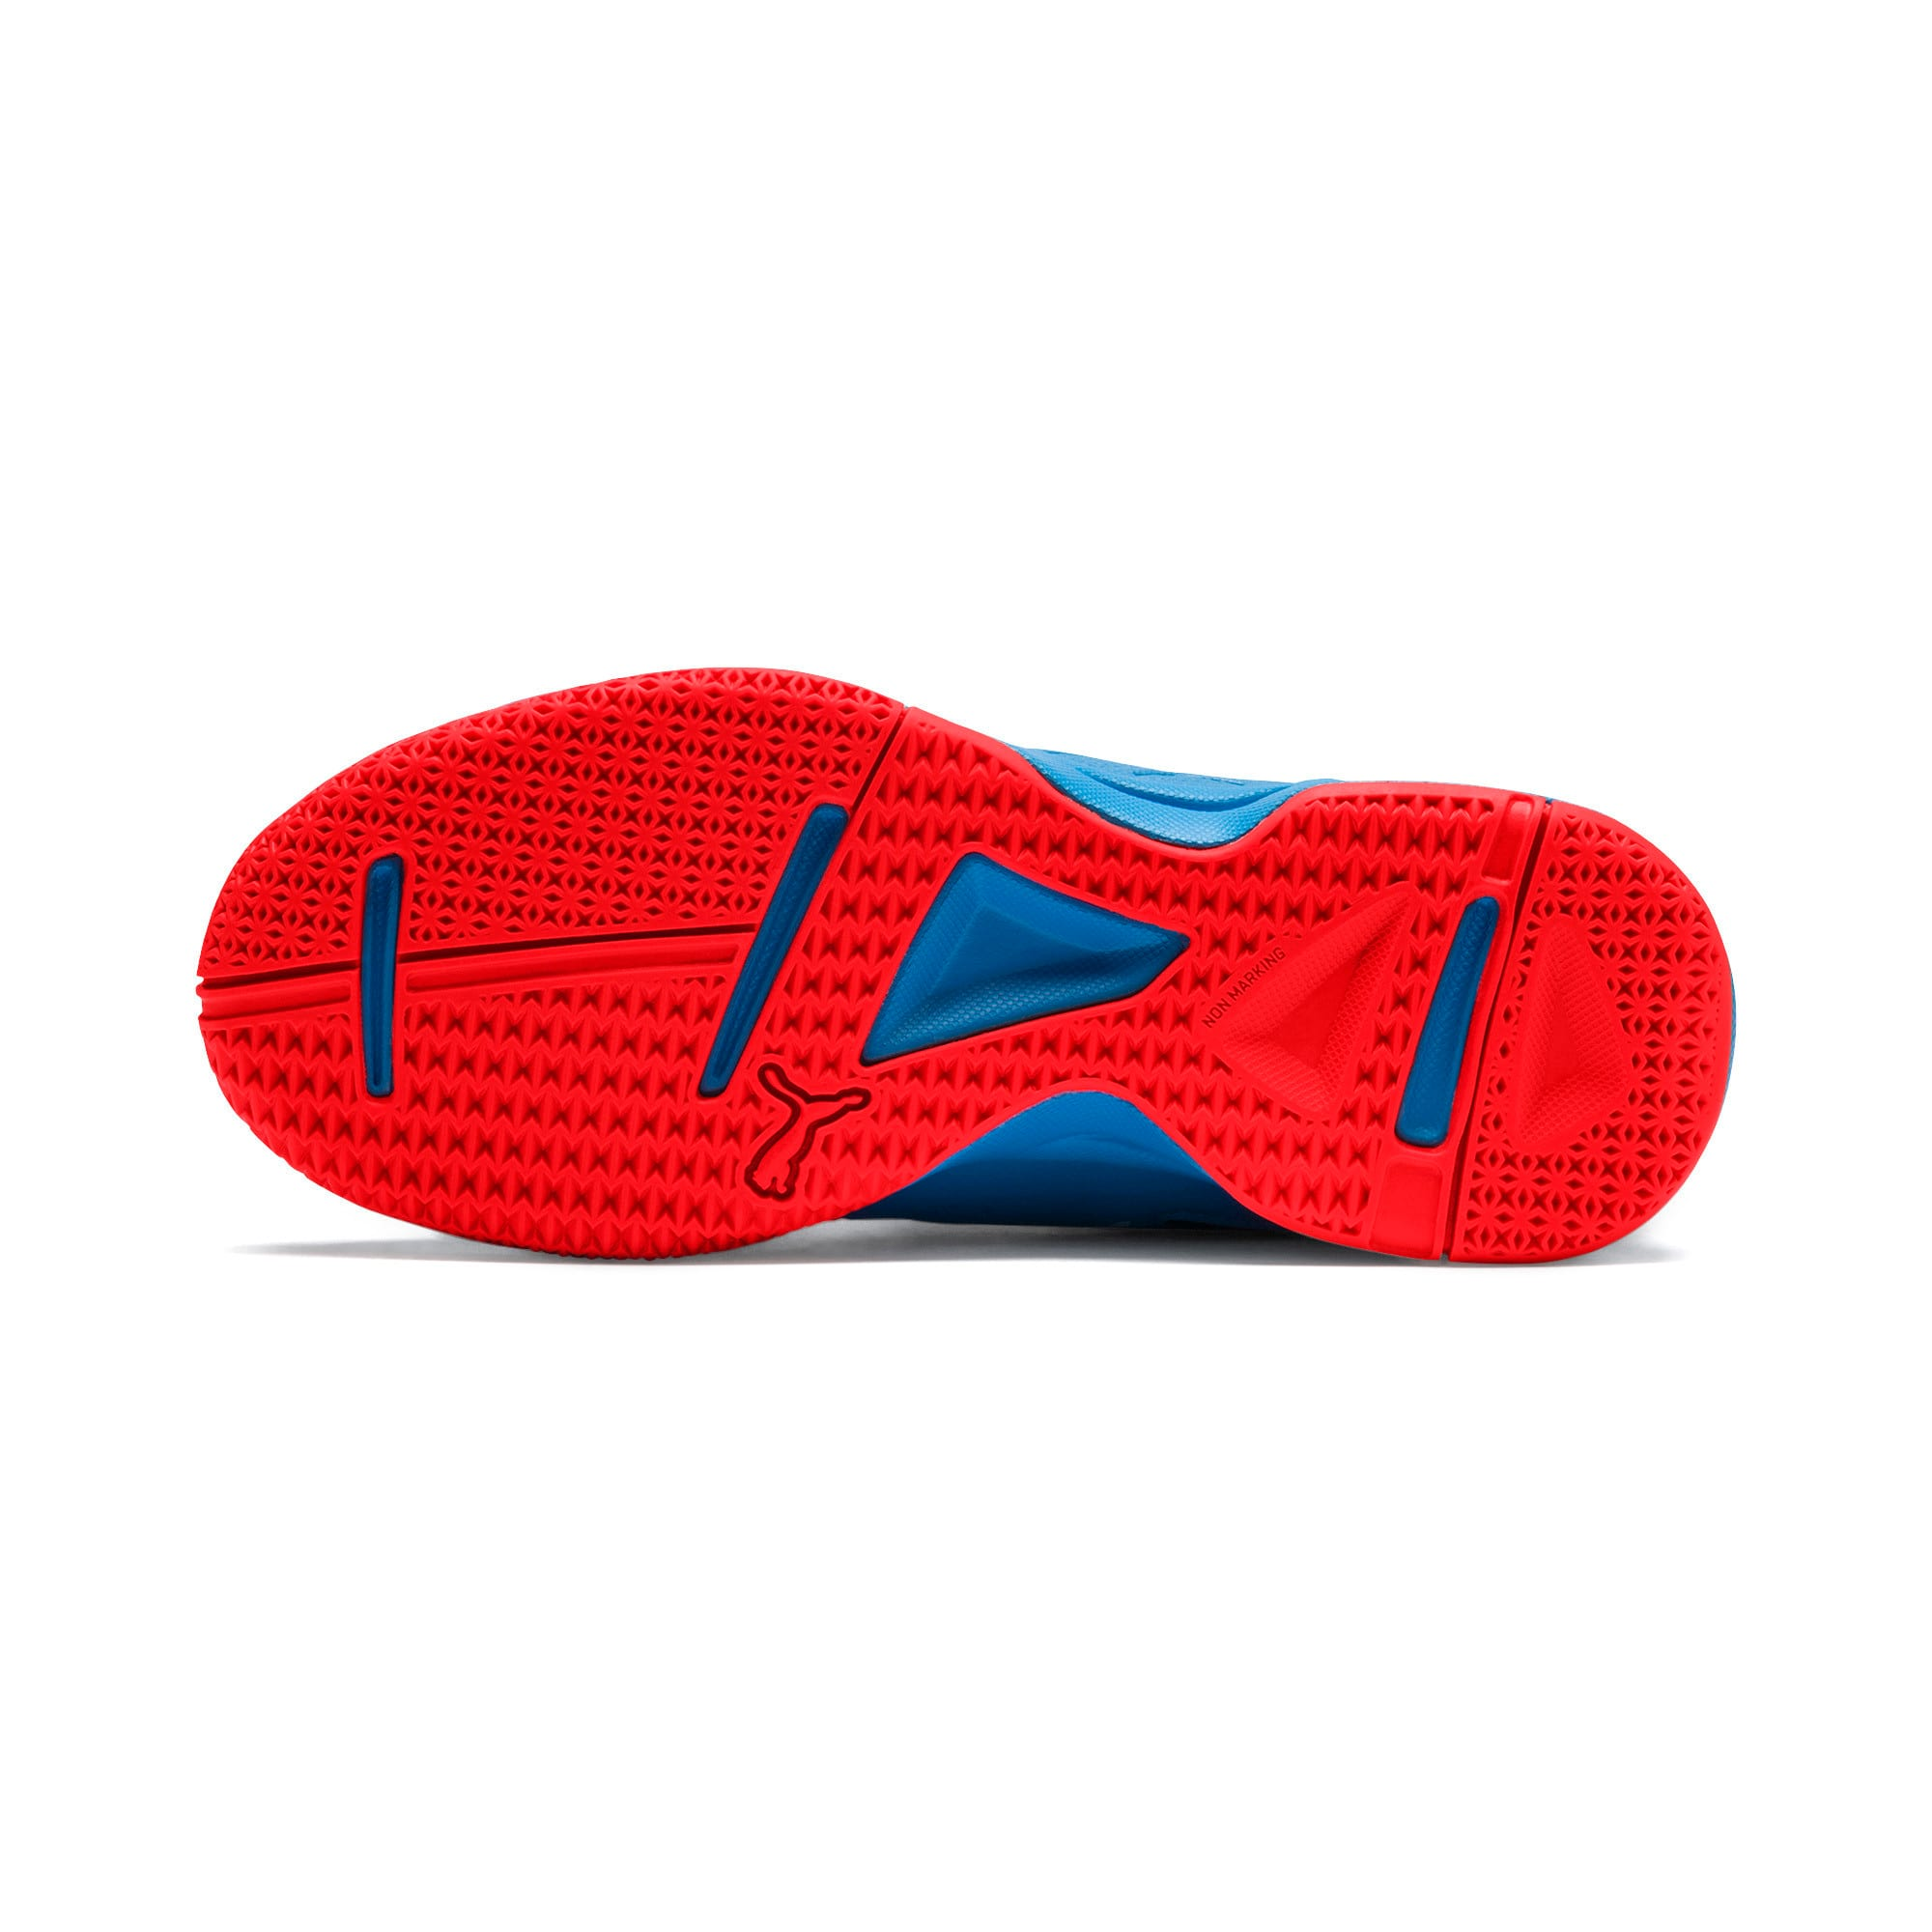 Thumbnail 4 of Tenaz V Youth Trainers, Bleu Azur-White-Black-Red, medium-IND